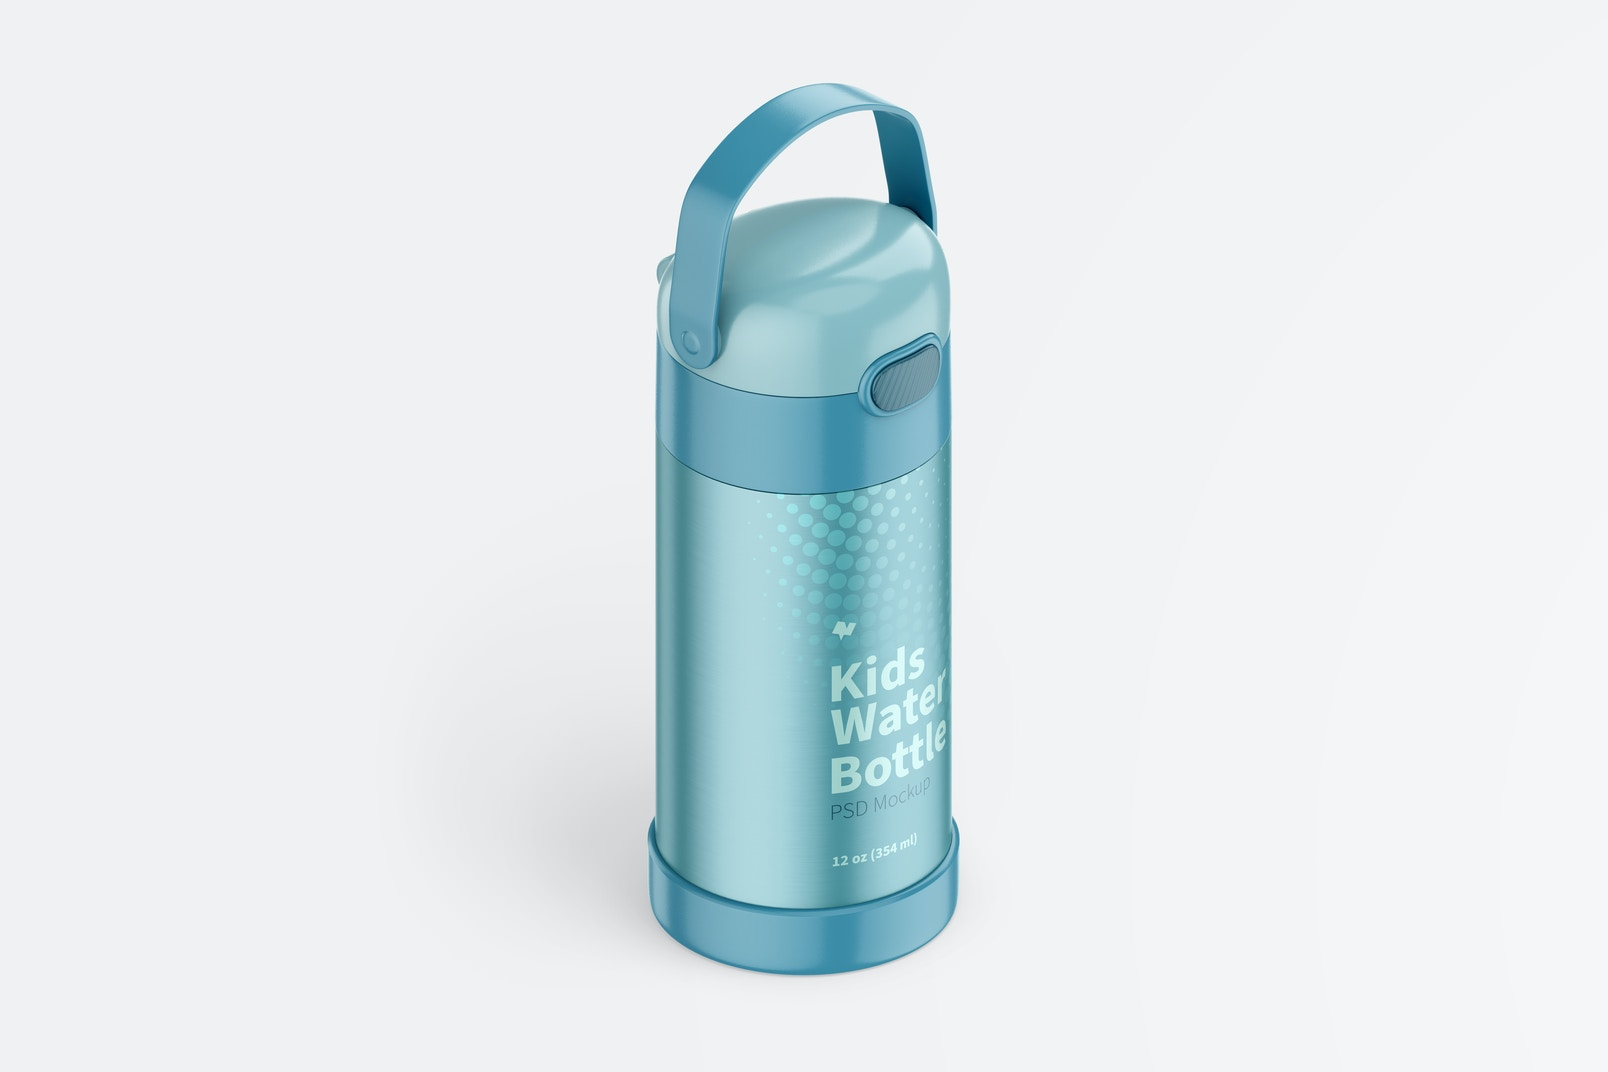 12 oz Kids Water Bottle Mockup, Isometric Right View